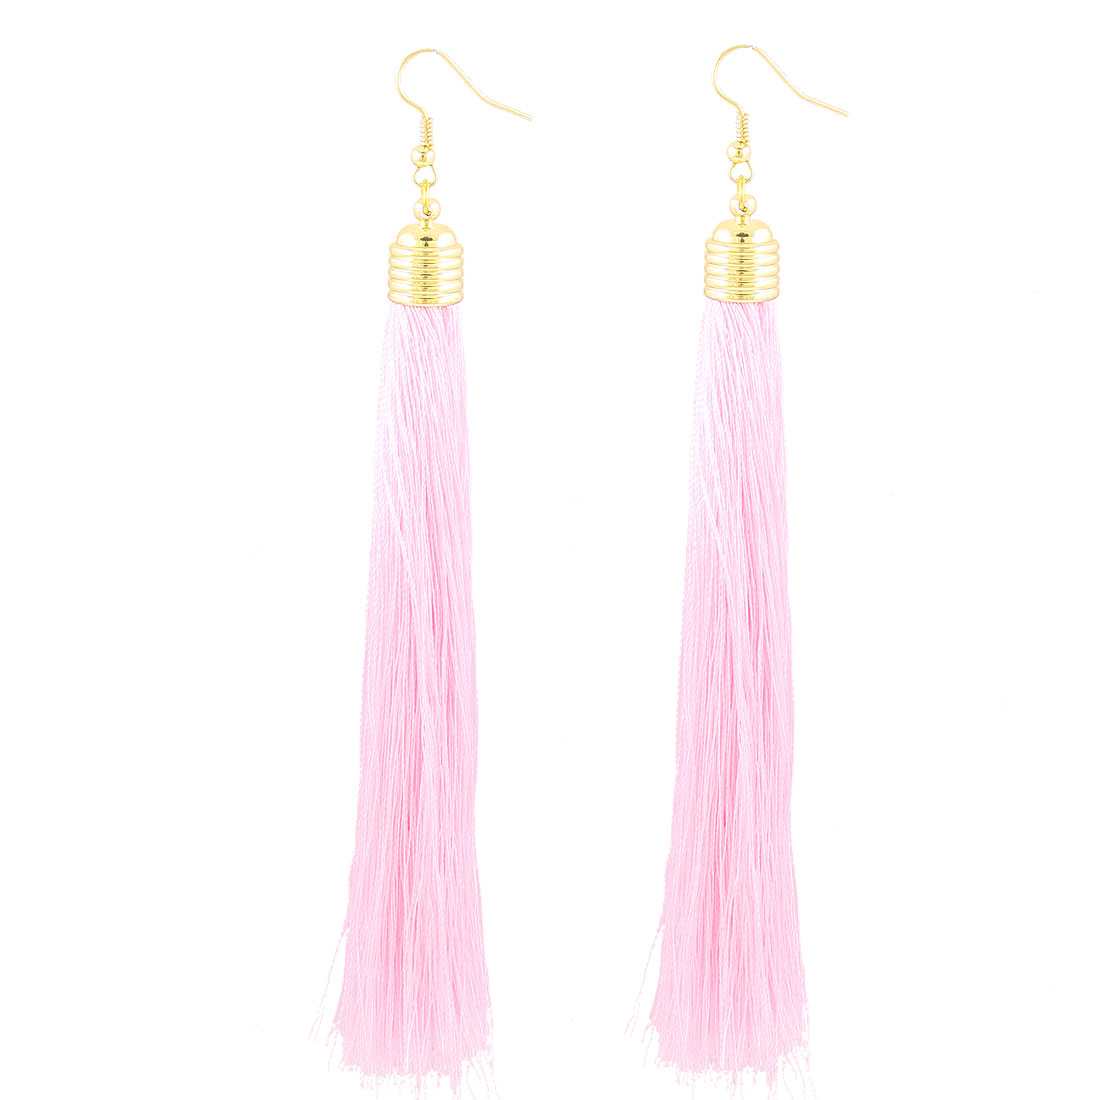 2 Pieces Fish Hook Dangling Earrings Pale Pink for Ladies